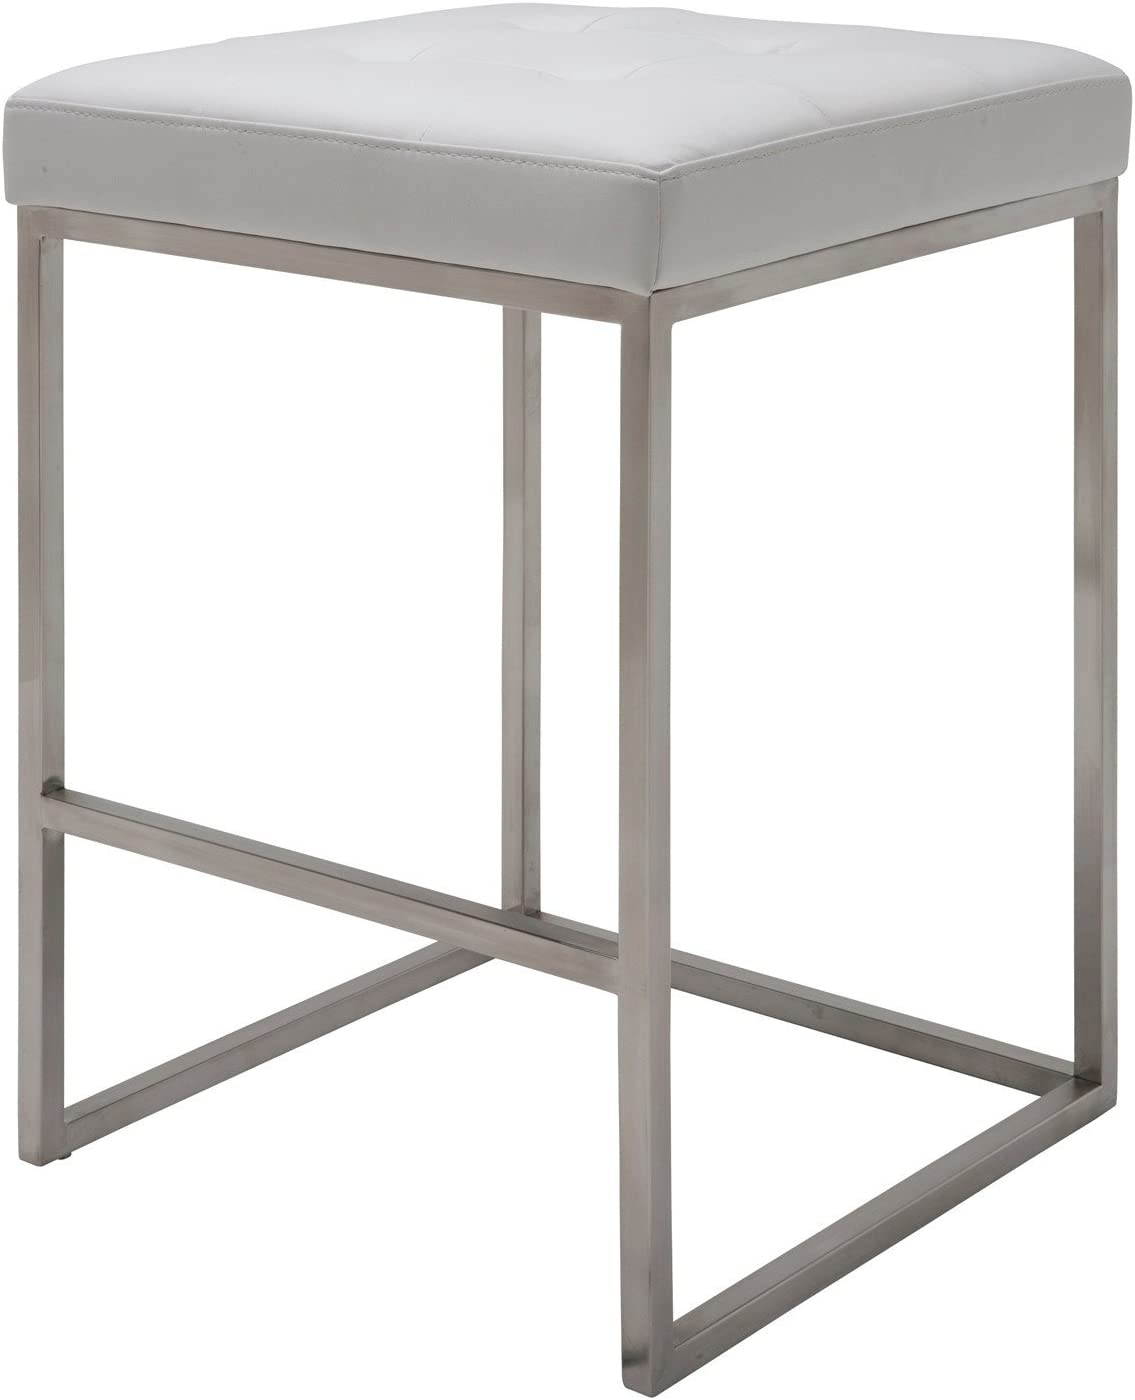 Chi Counter Stool 25 75 In Brushed Stainless Steel Frame White Kitchen Dining